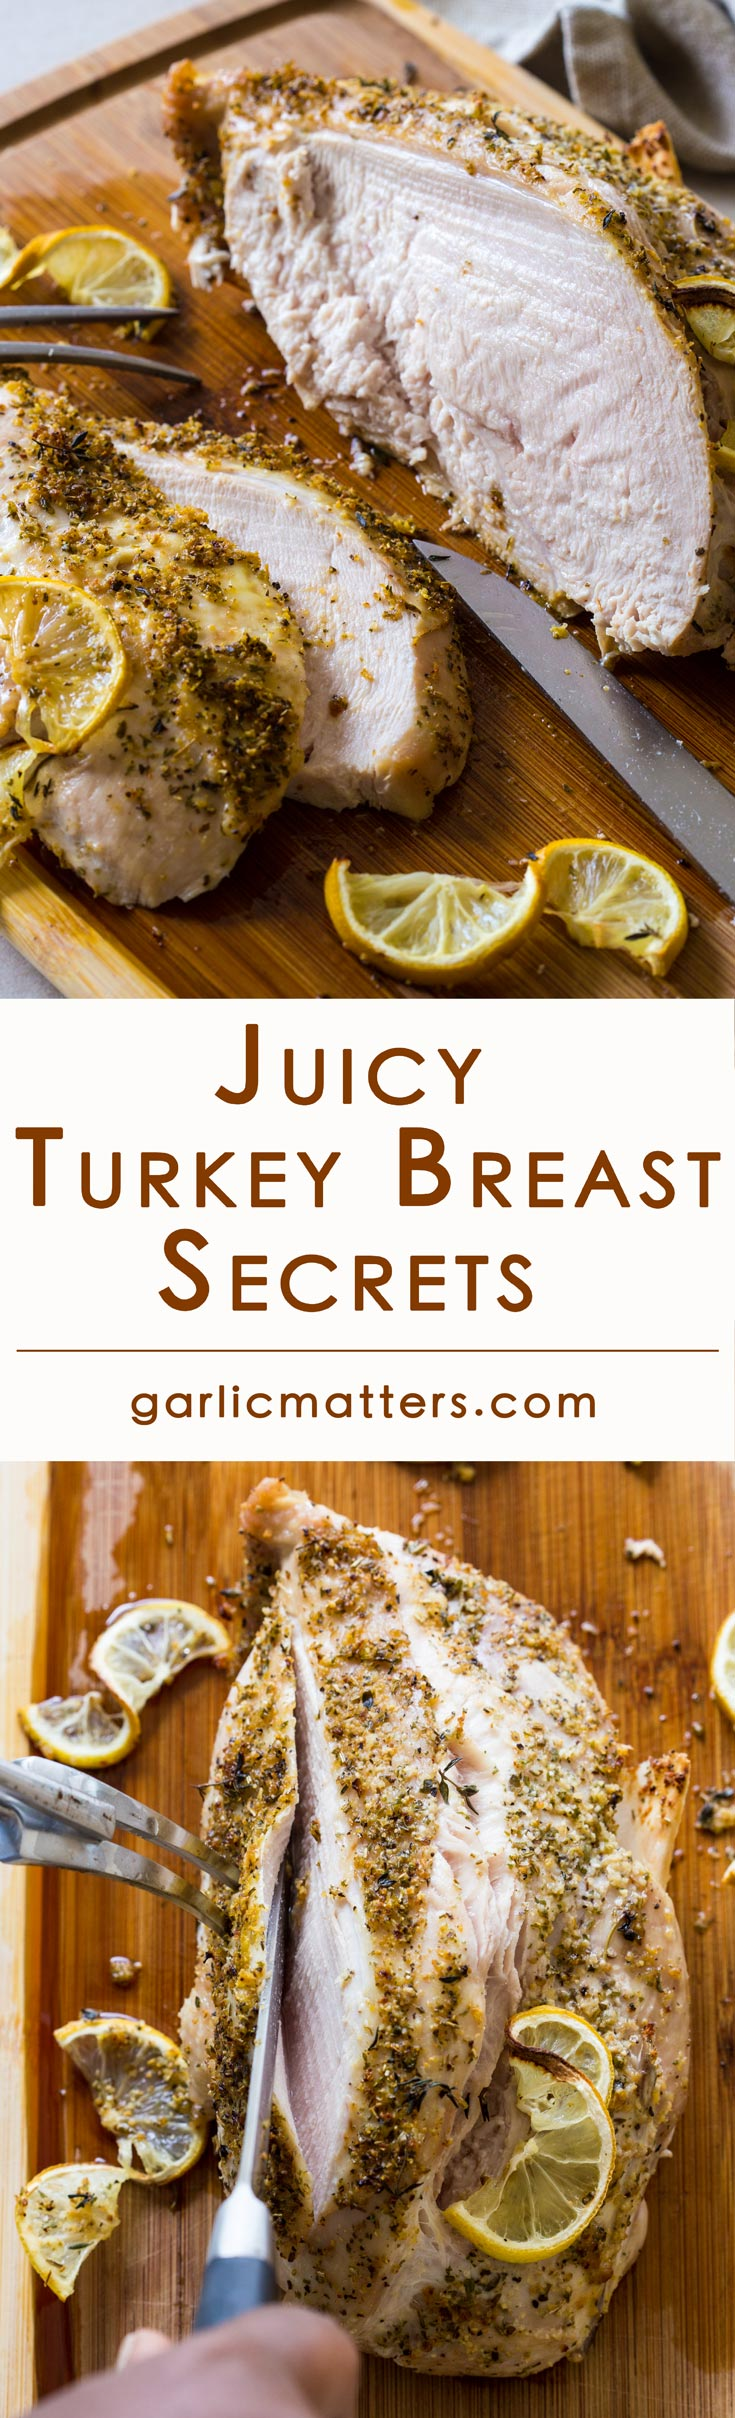 how to cook a juicy turkey breast in the oven